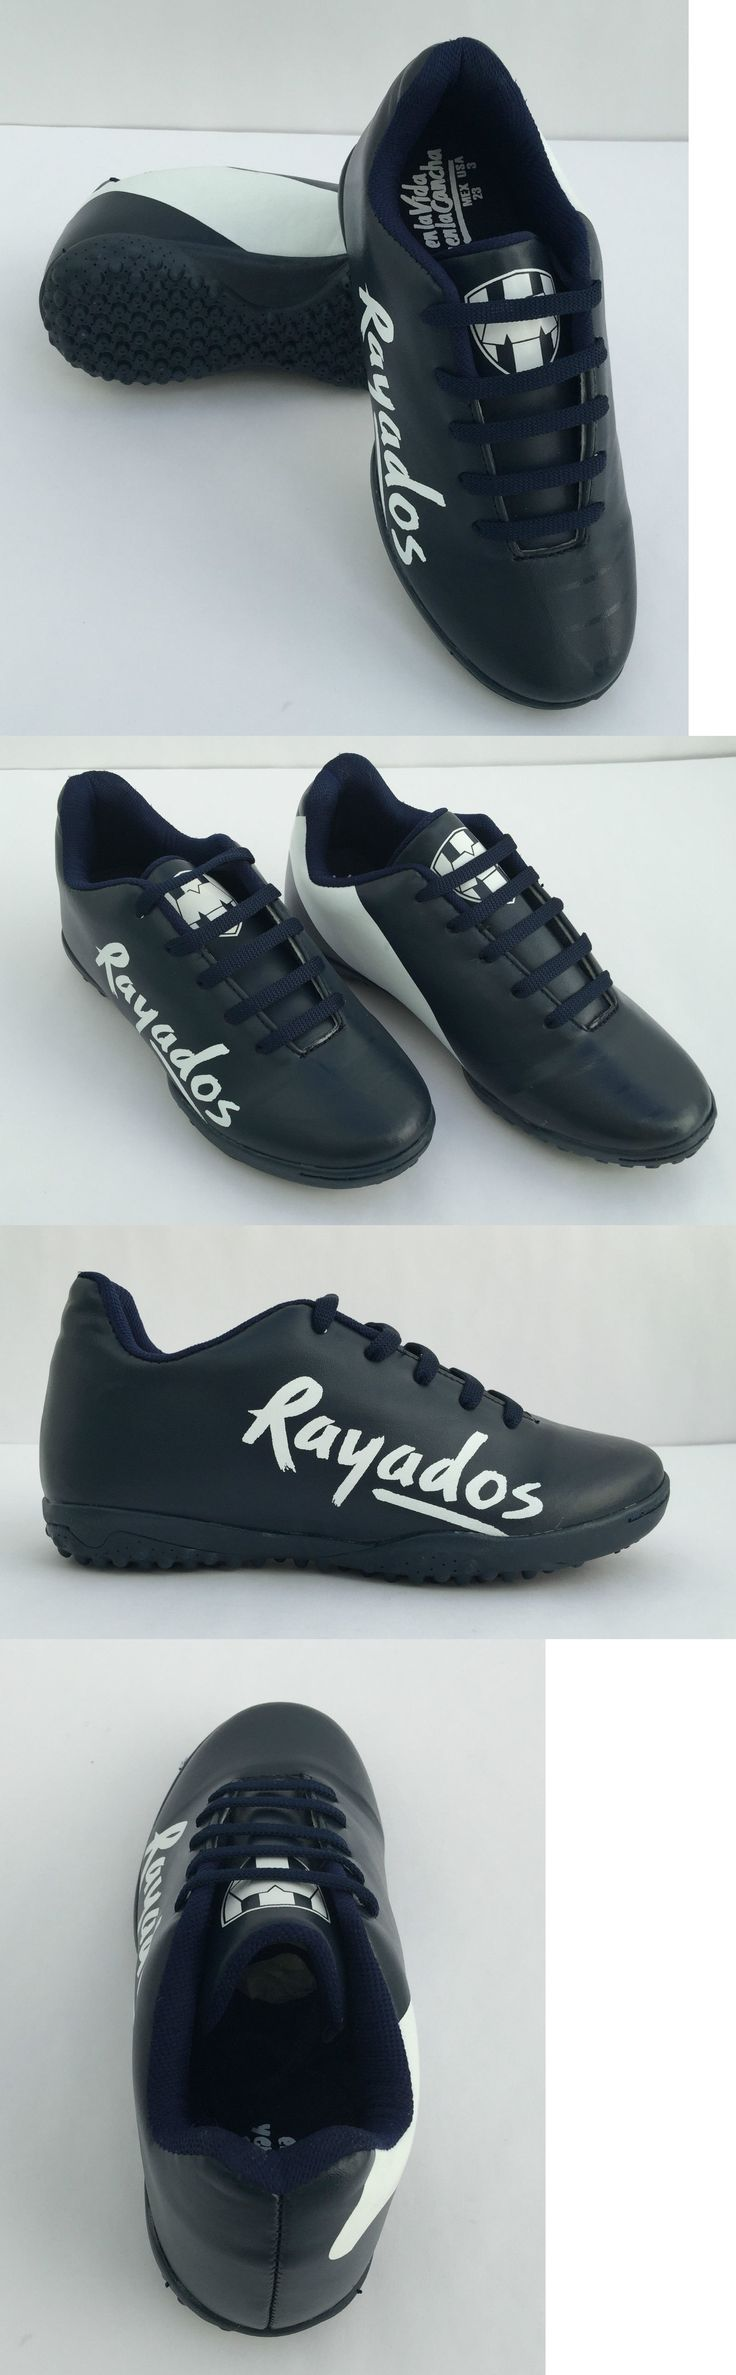 Other Soccer Clothing and Accs 159179: Kids Soccer Shoes Licensed Rayados De Monterrey Size 12 To 6 Dark Blue -> BUY IT NOW ONLY: $33.99 on eBay!